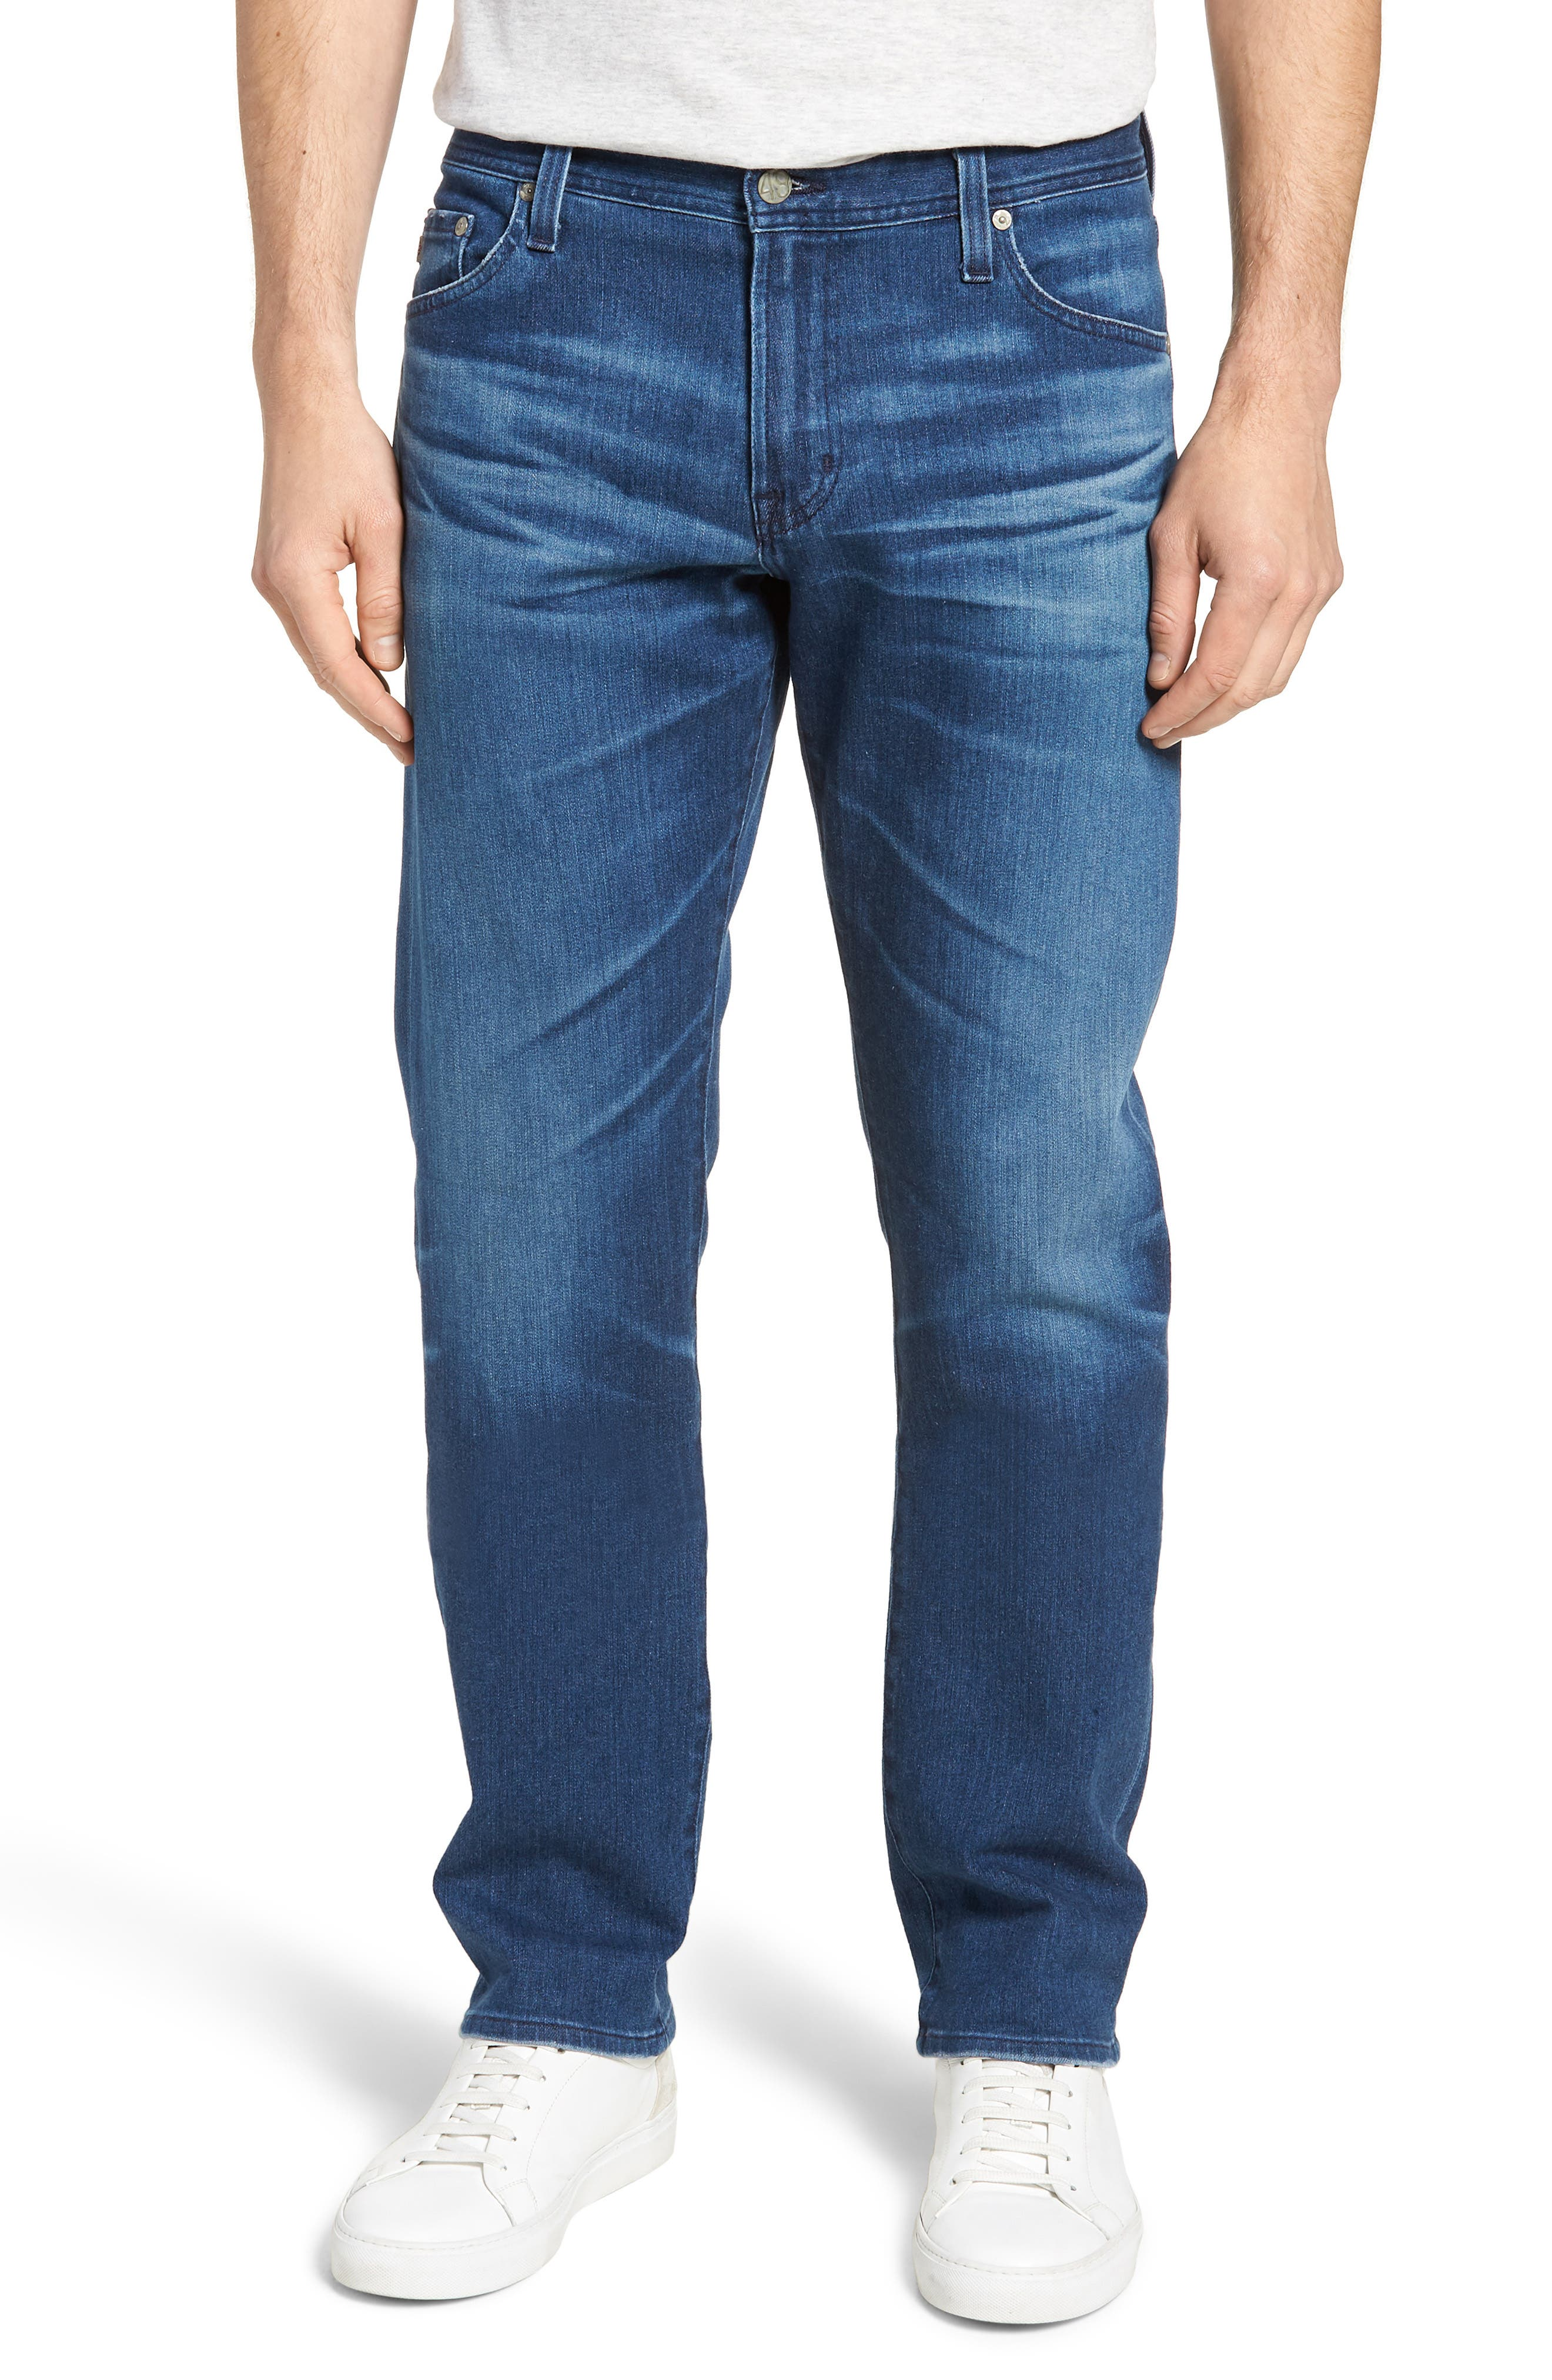 Graduate Slim Straight Fit Jeans,                             Main thumbnail 1, color,                             10 YEARS PAPERBACK